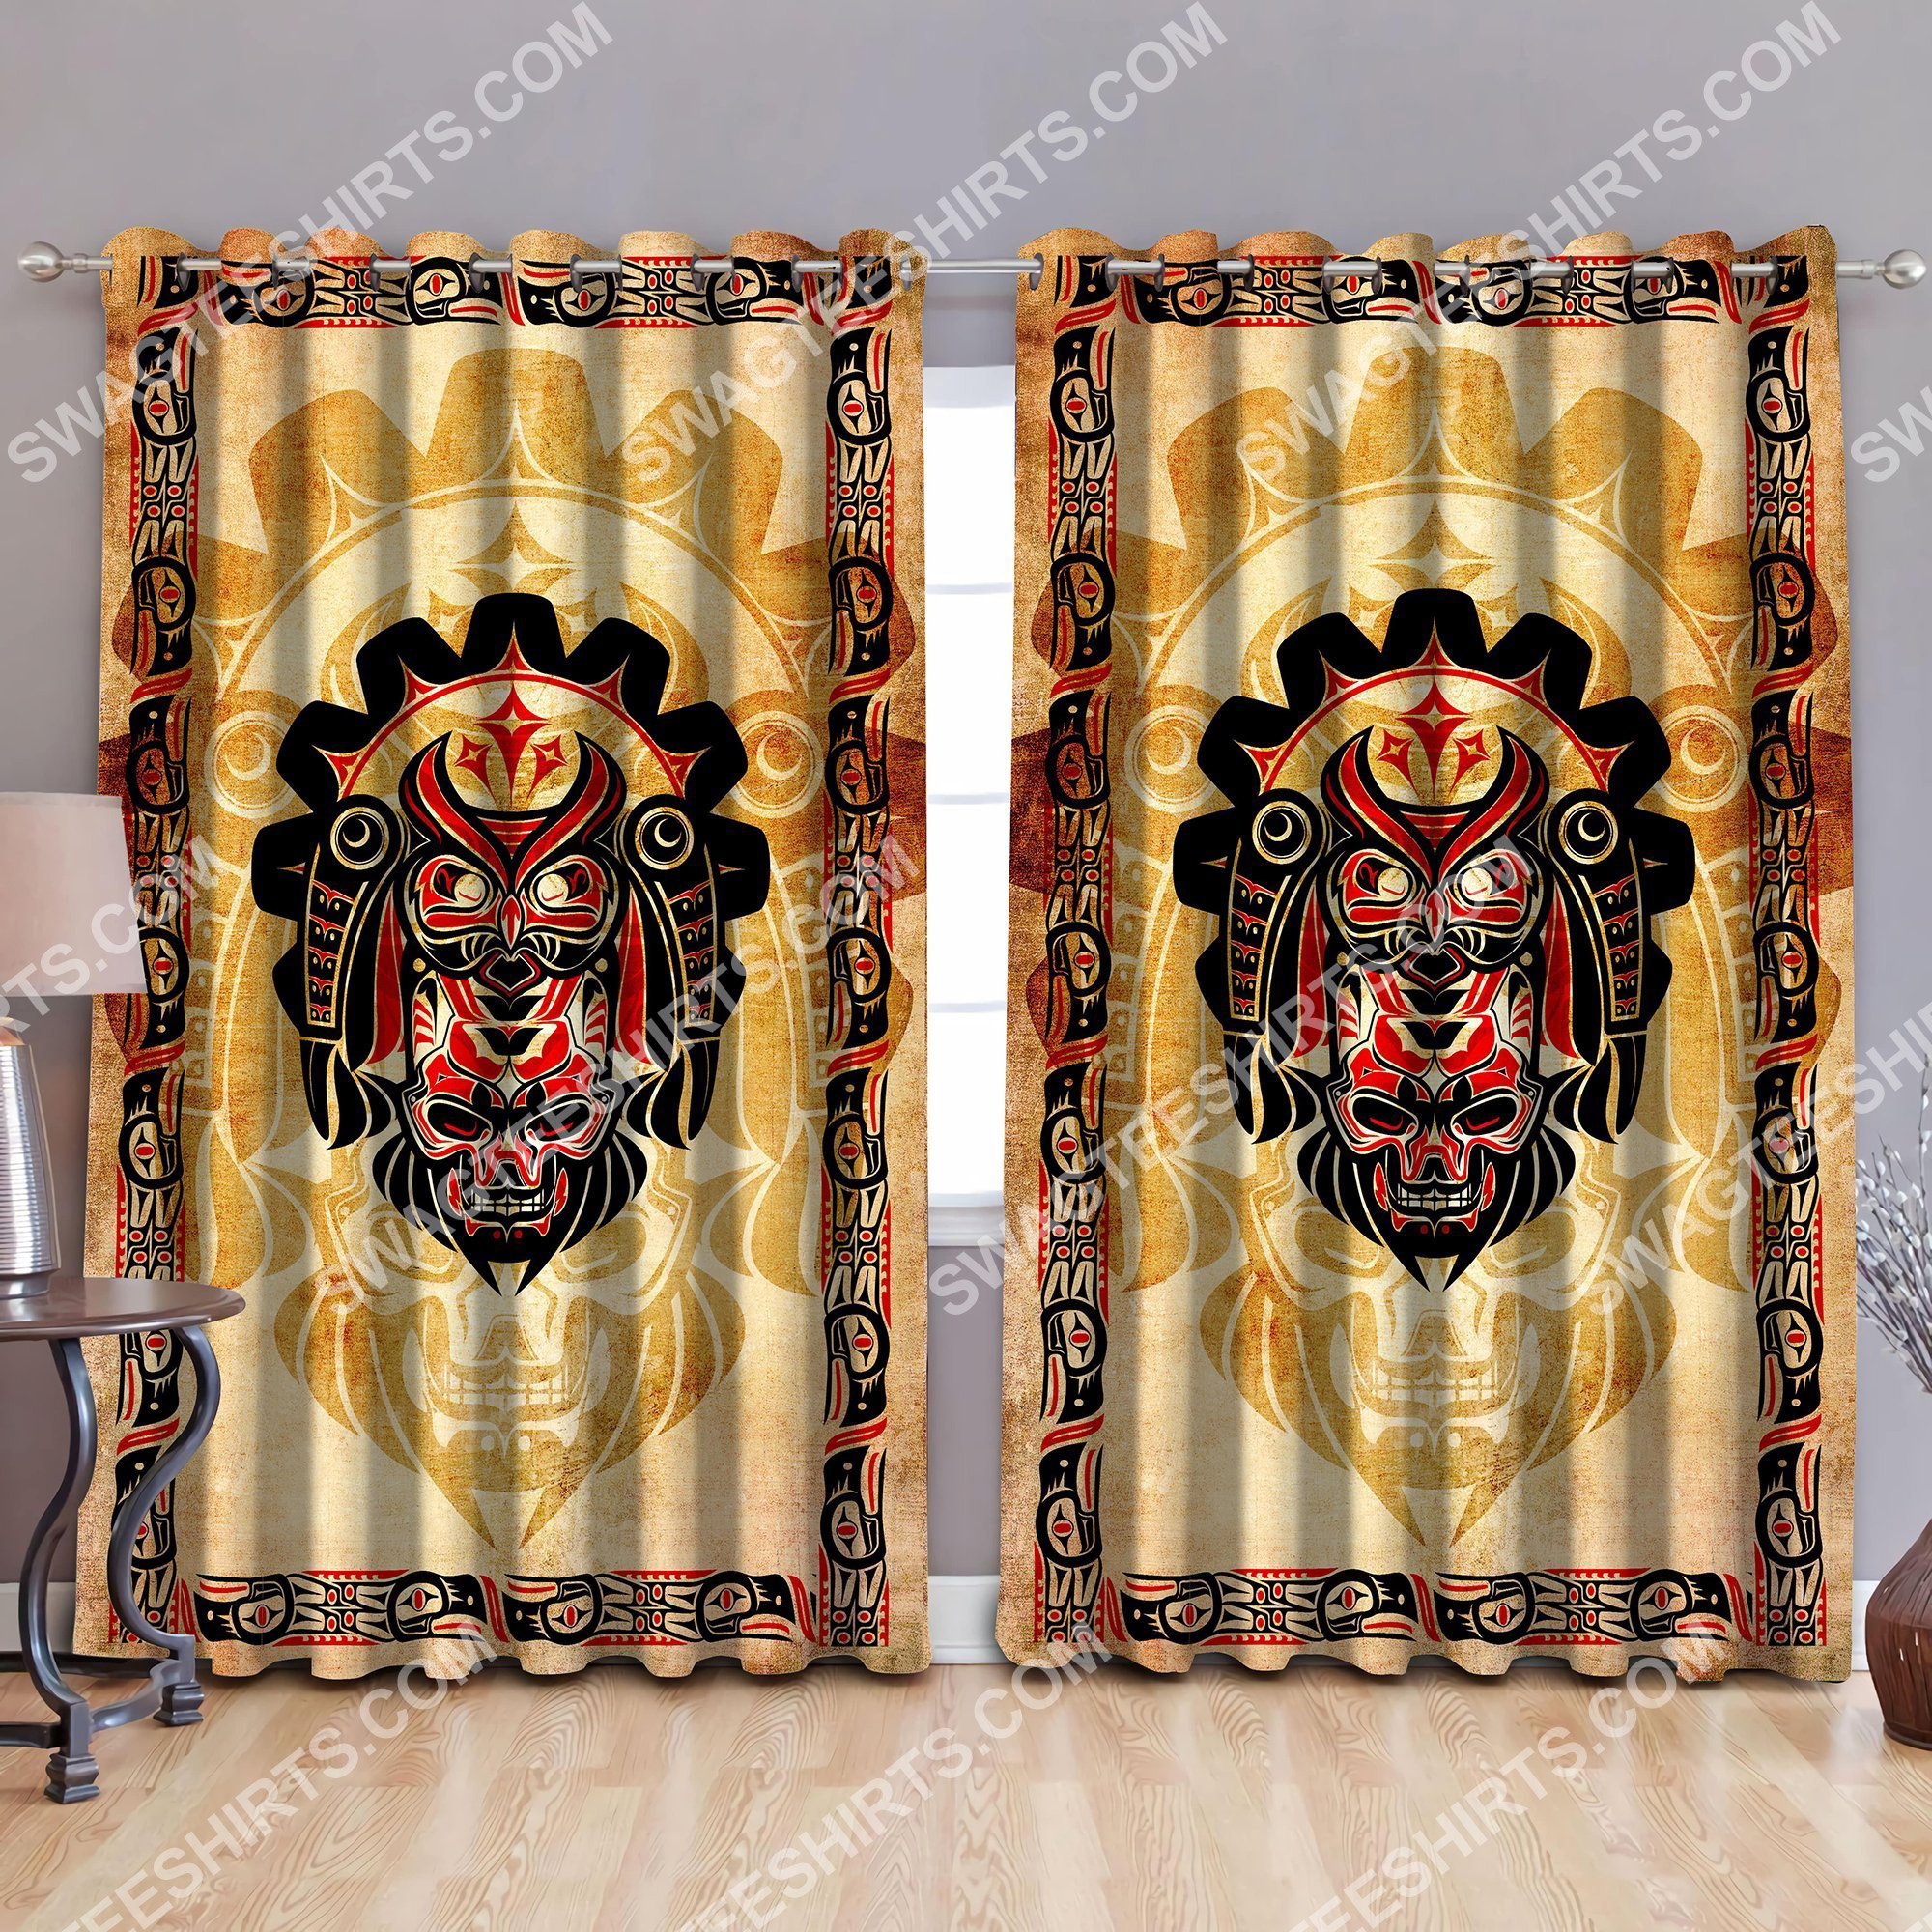 haida indians all over printed window curtains 3 - Copy (2)